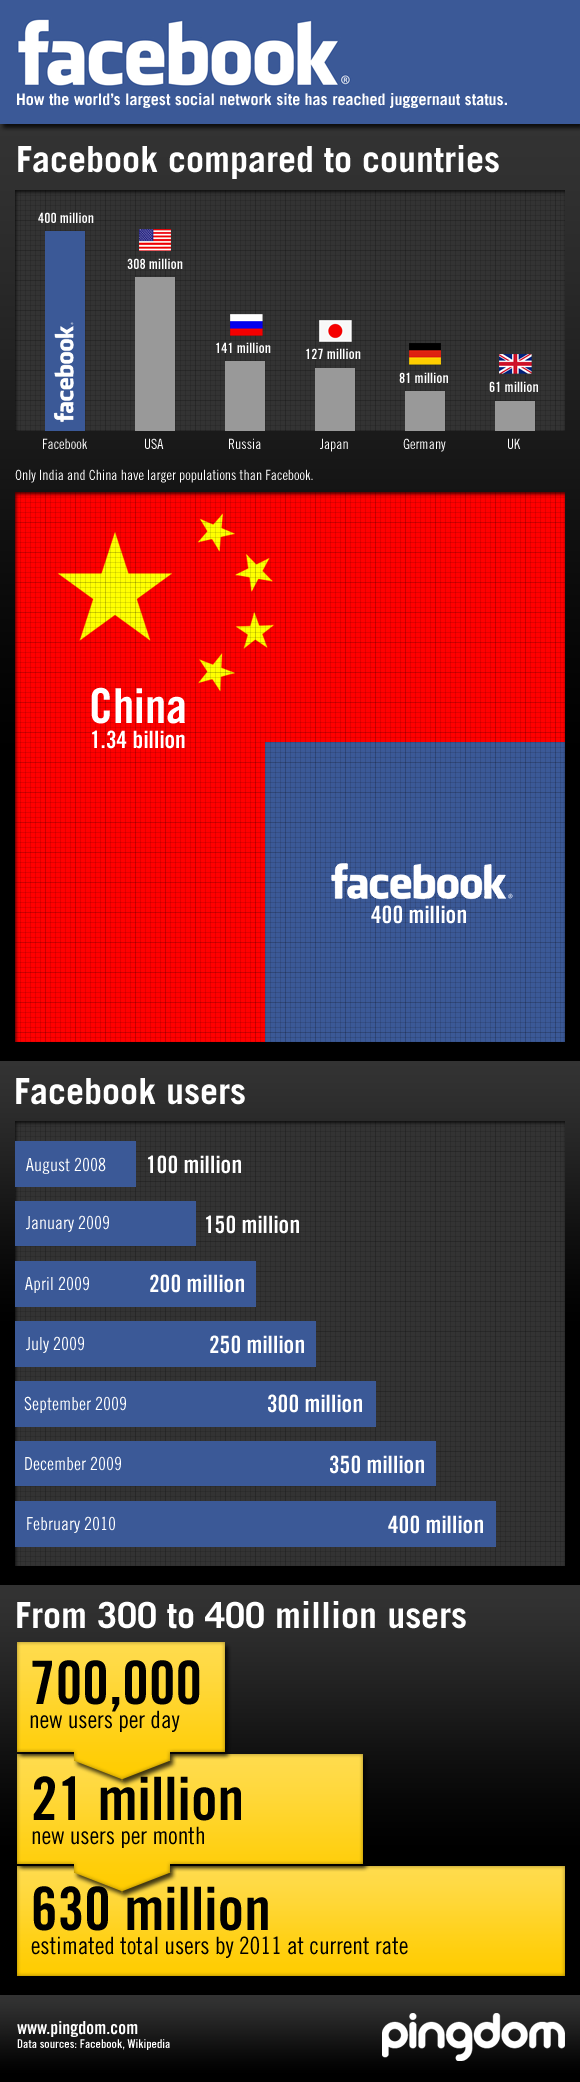 Facebook, social media juggernaut